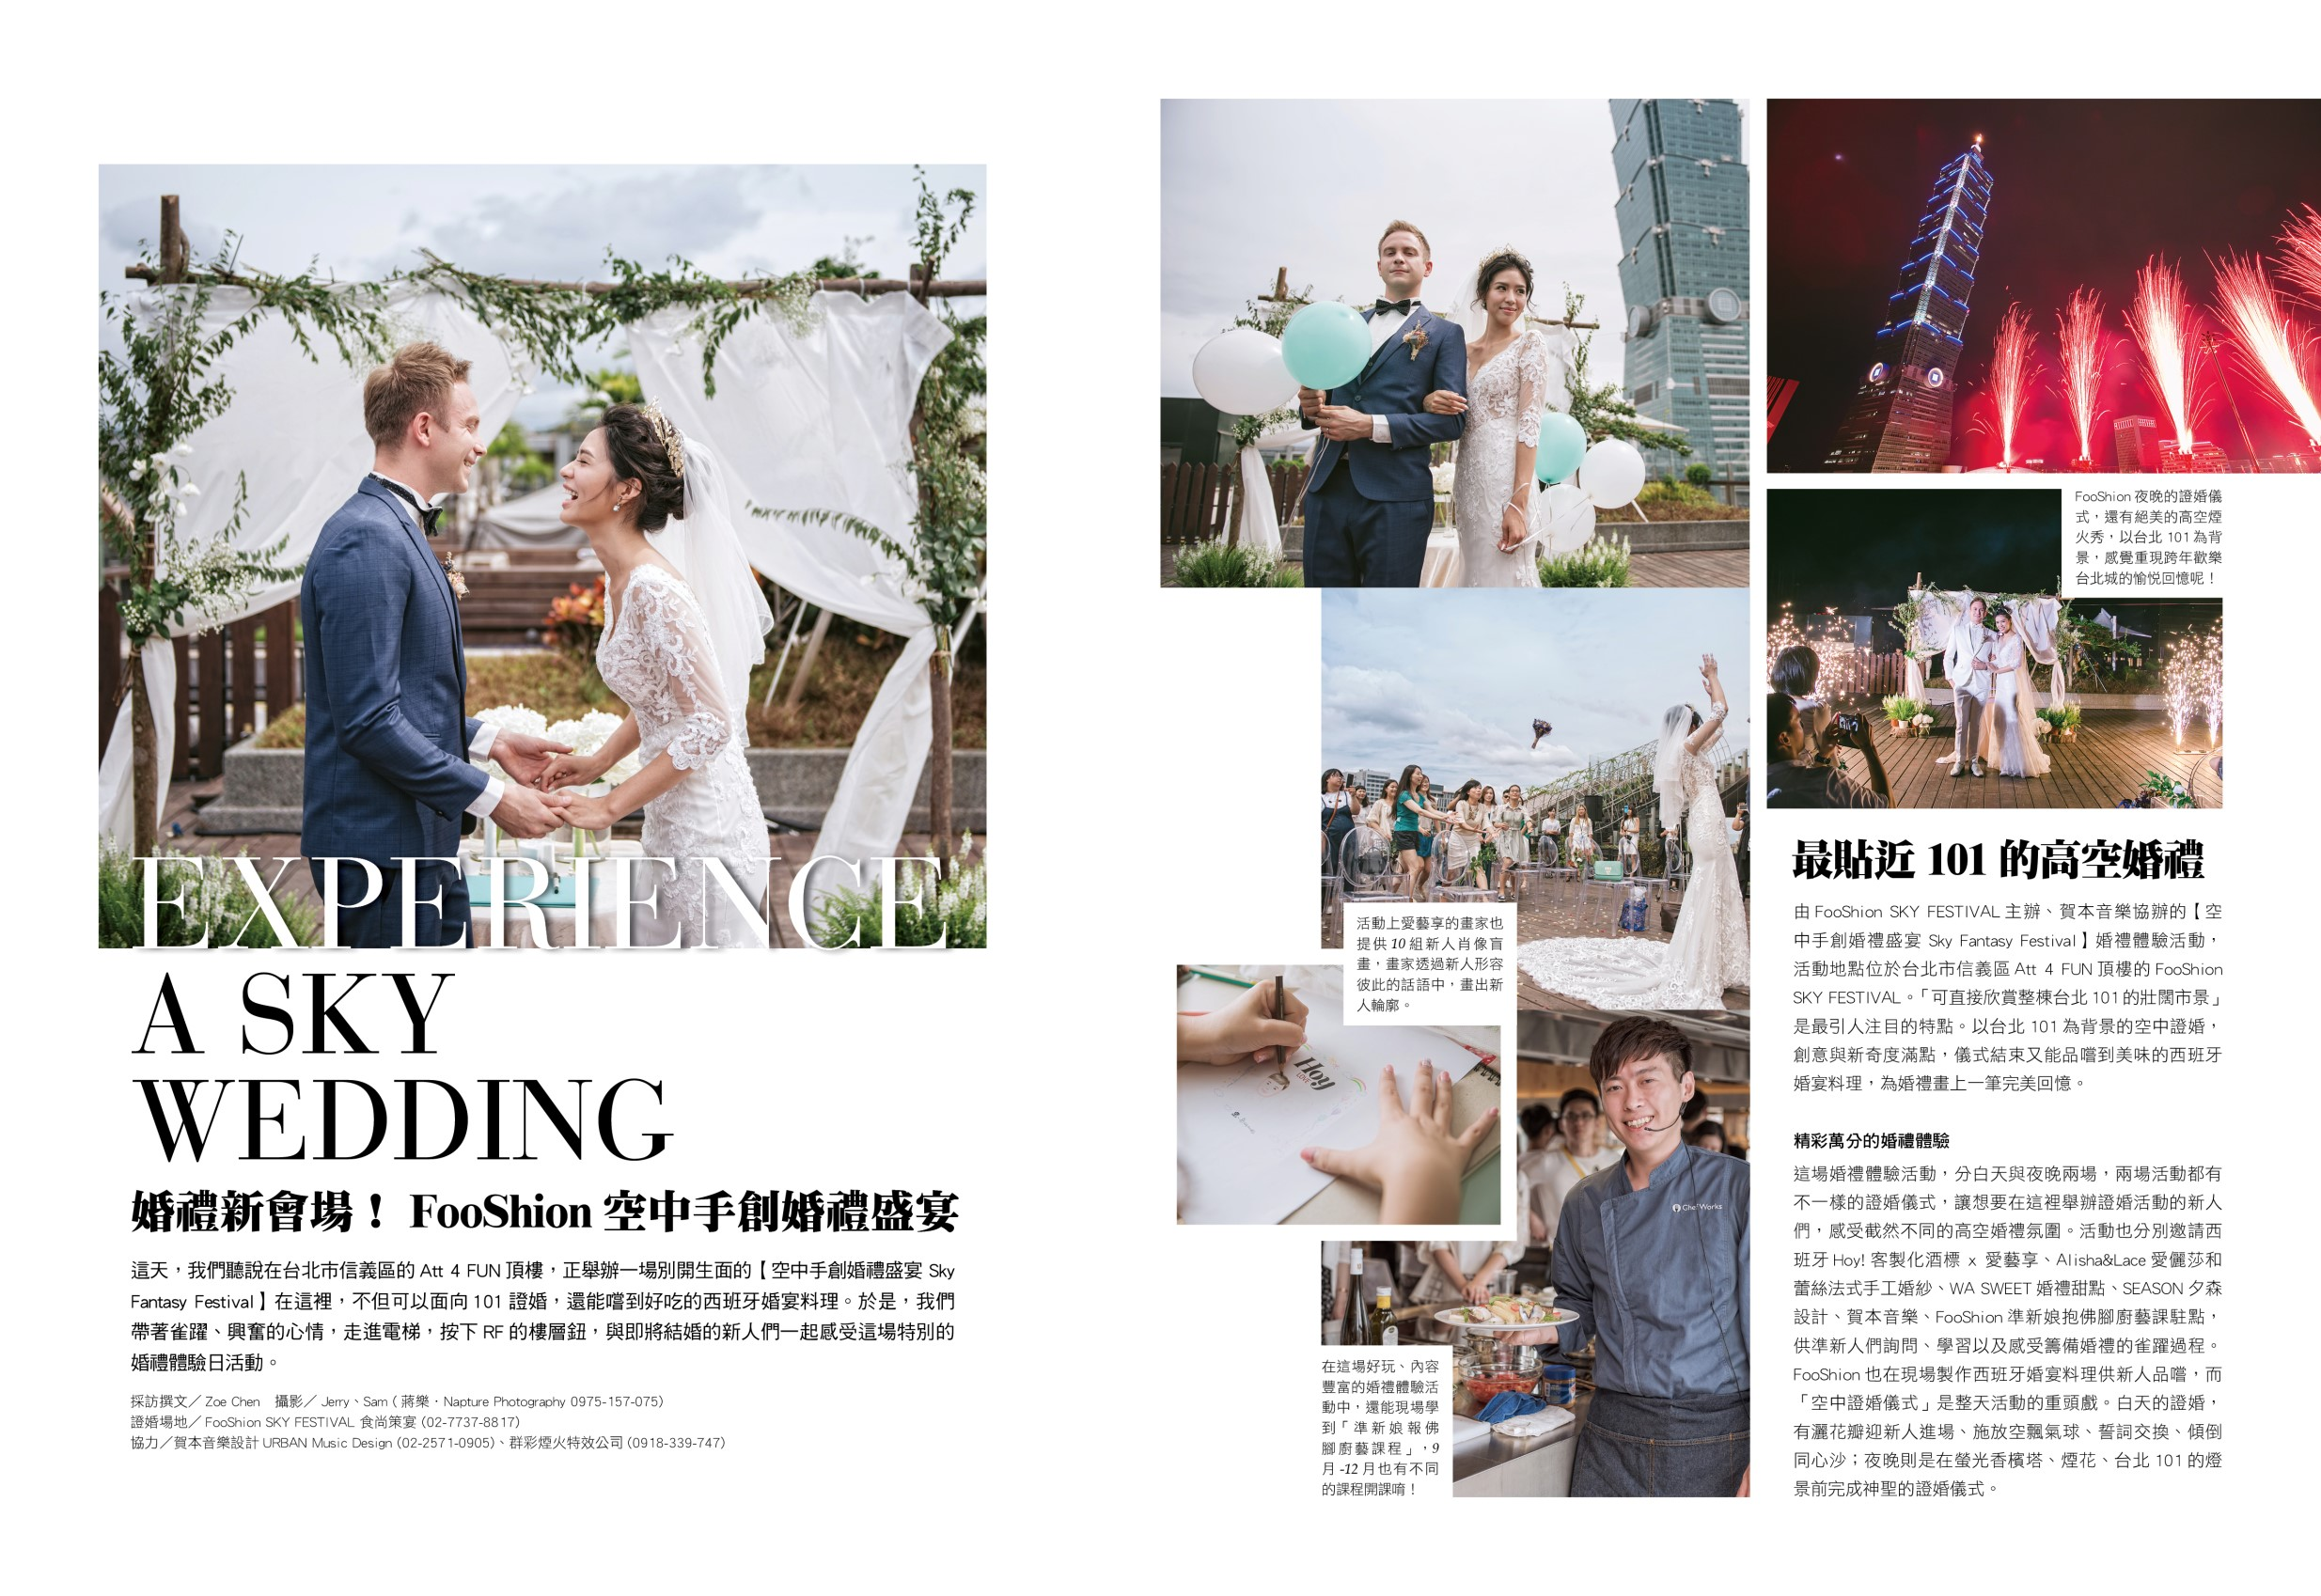 Taipei 101 Sky Wedding 專訪